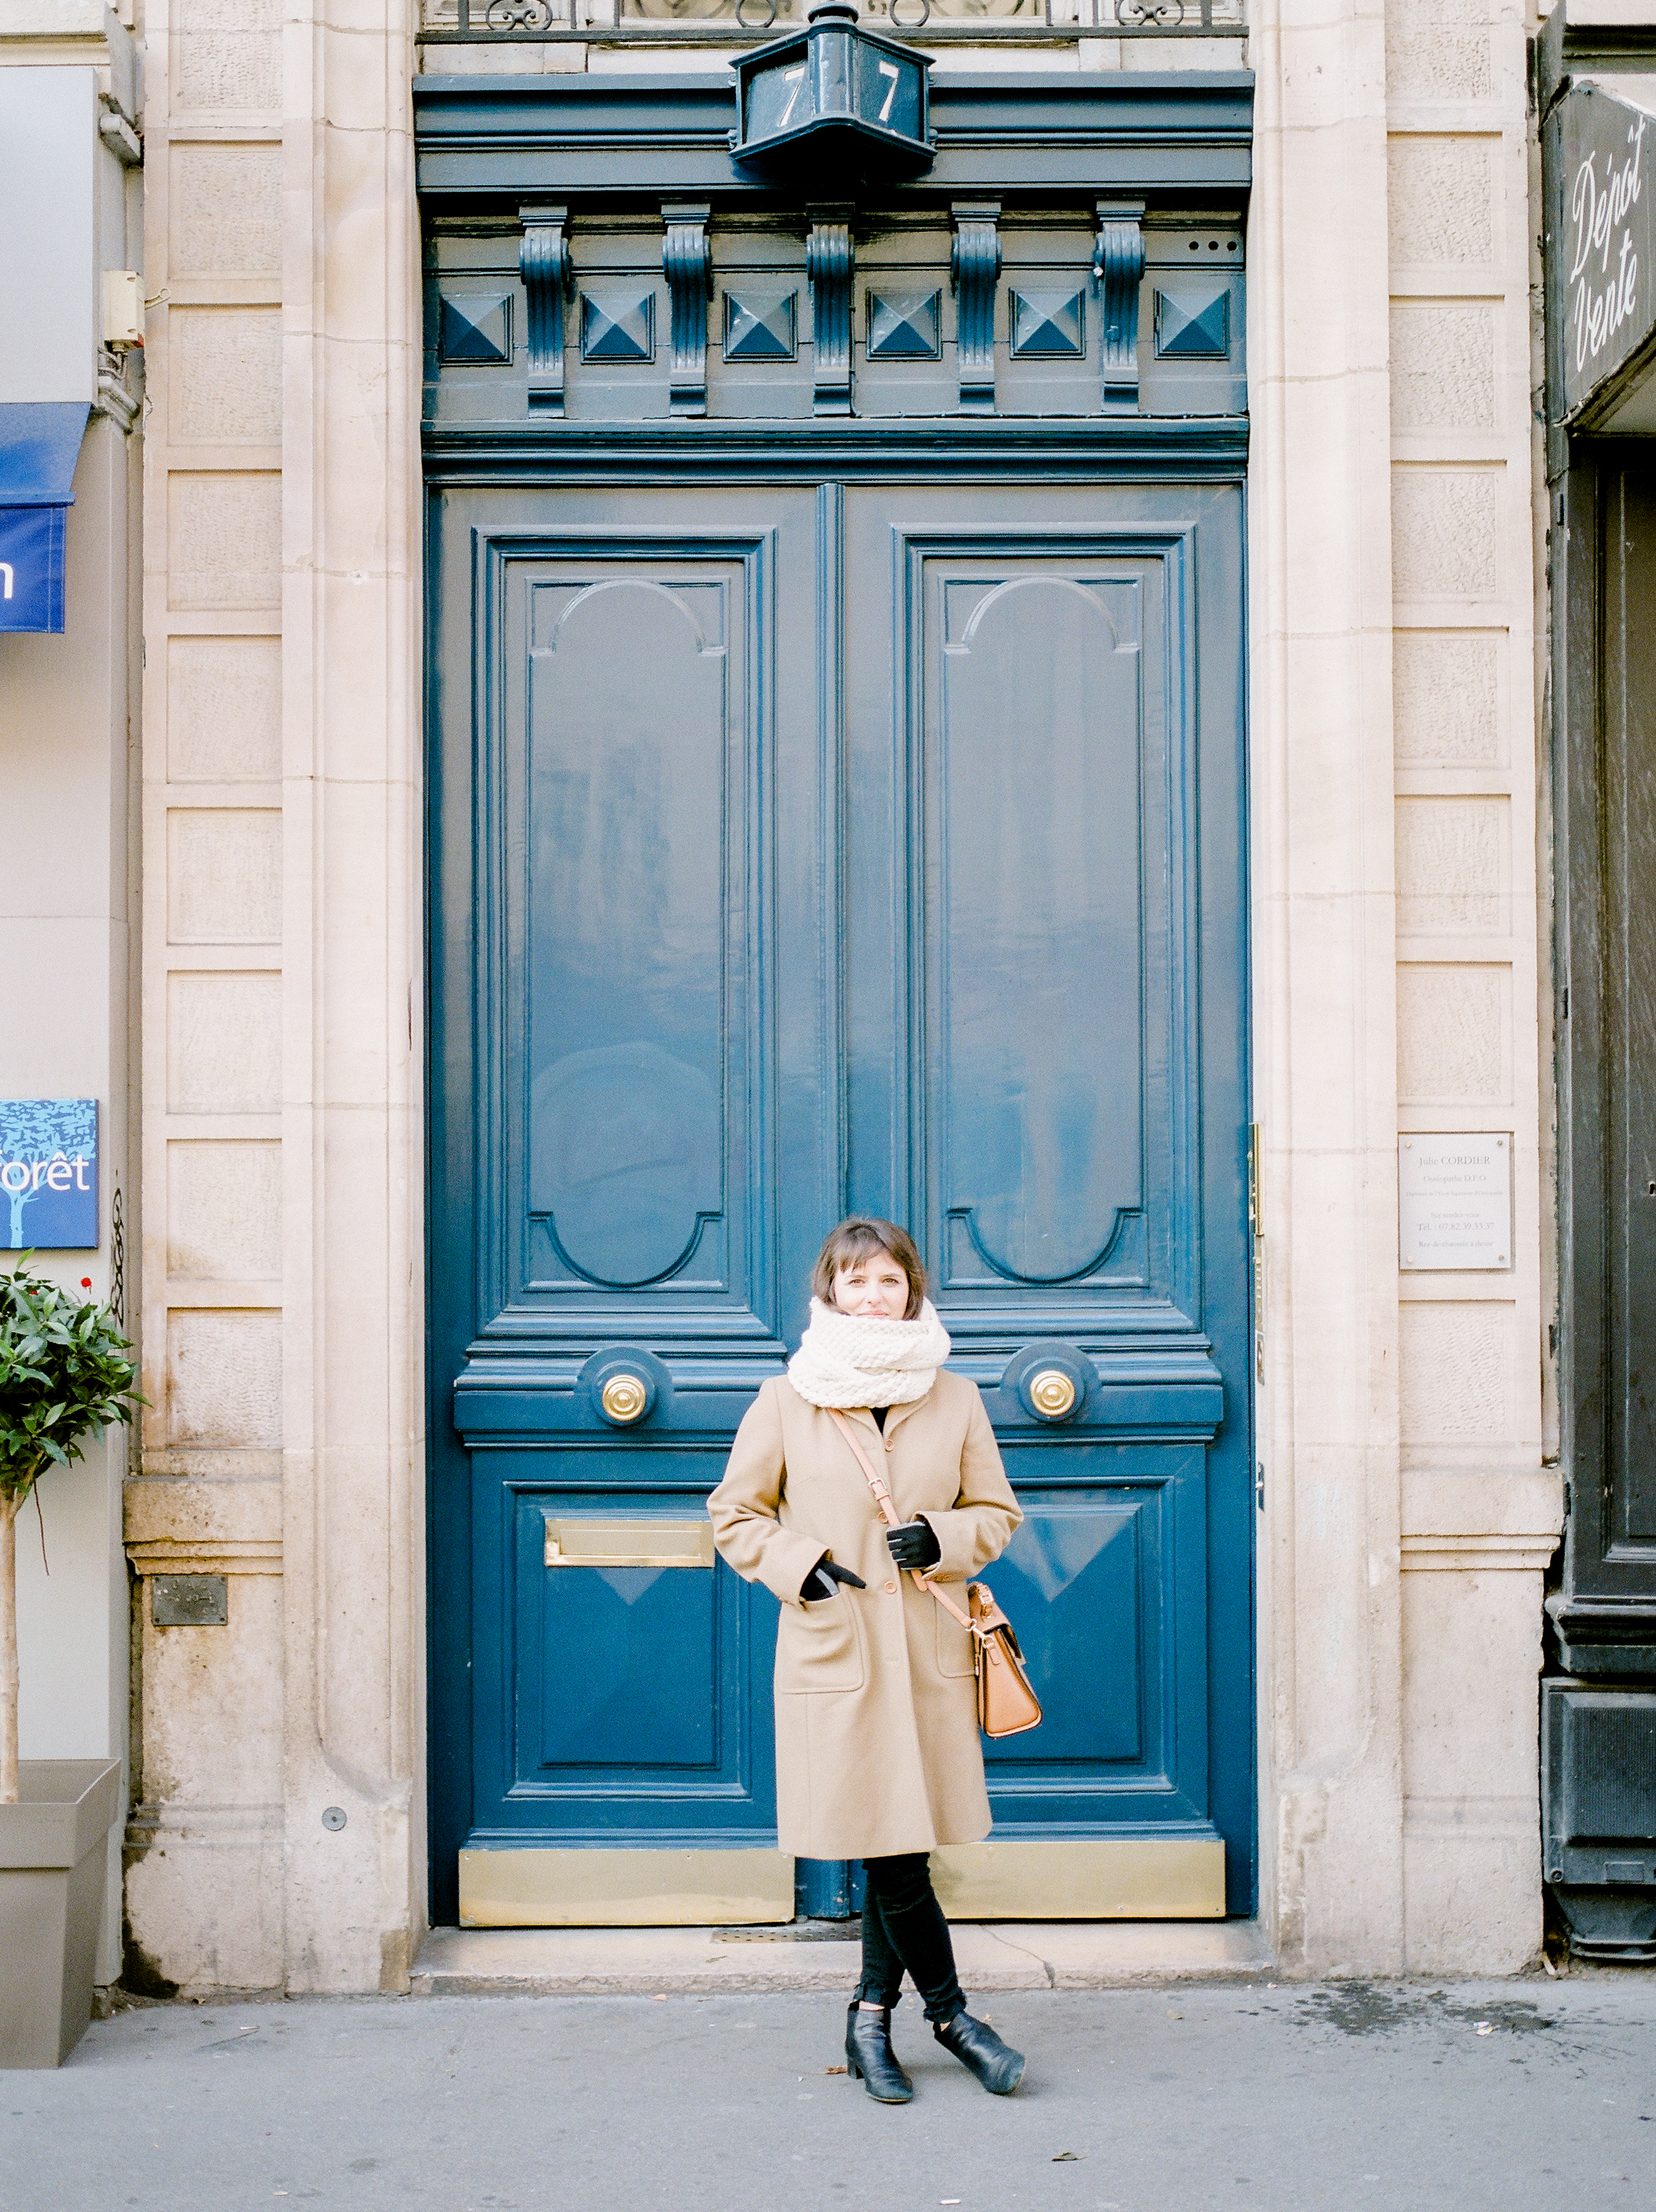 best-places-to-visit-in-parisjpg